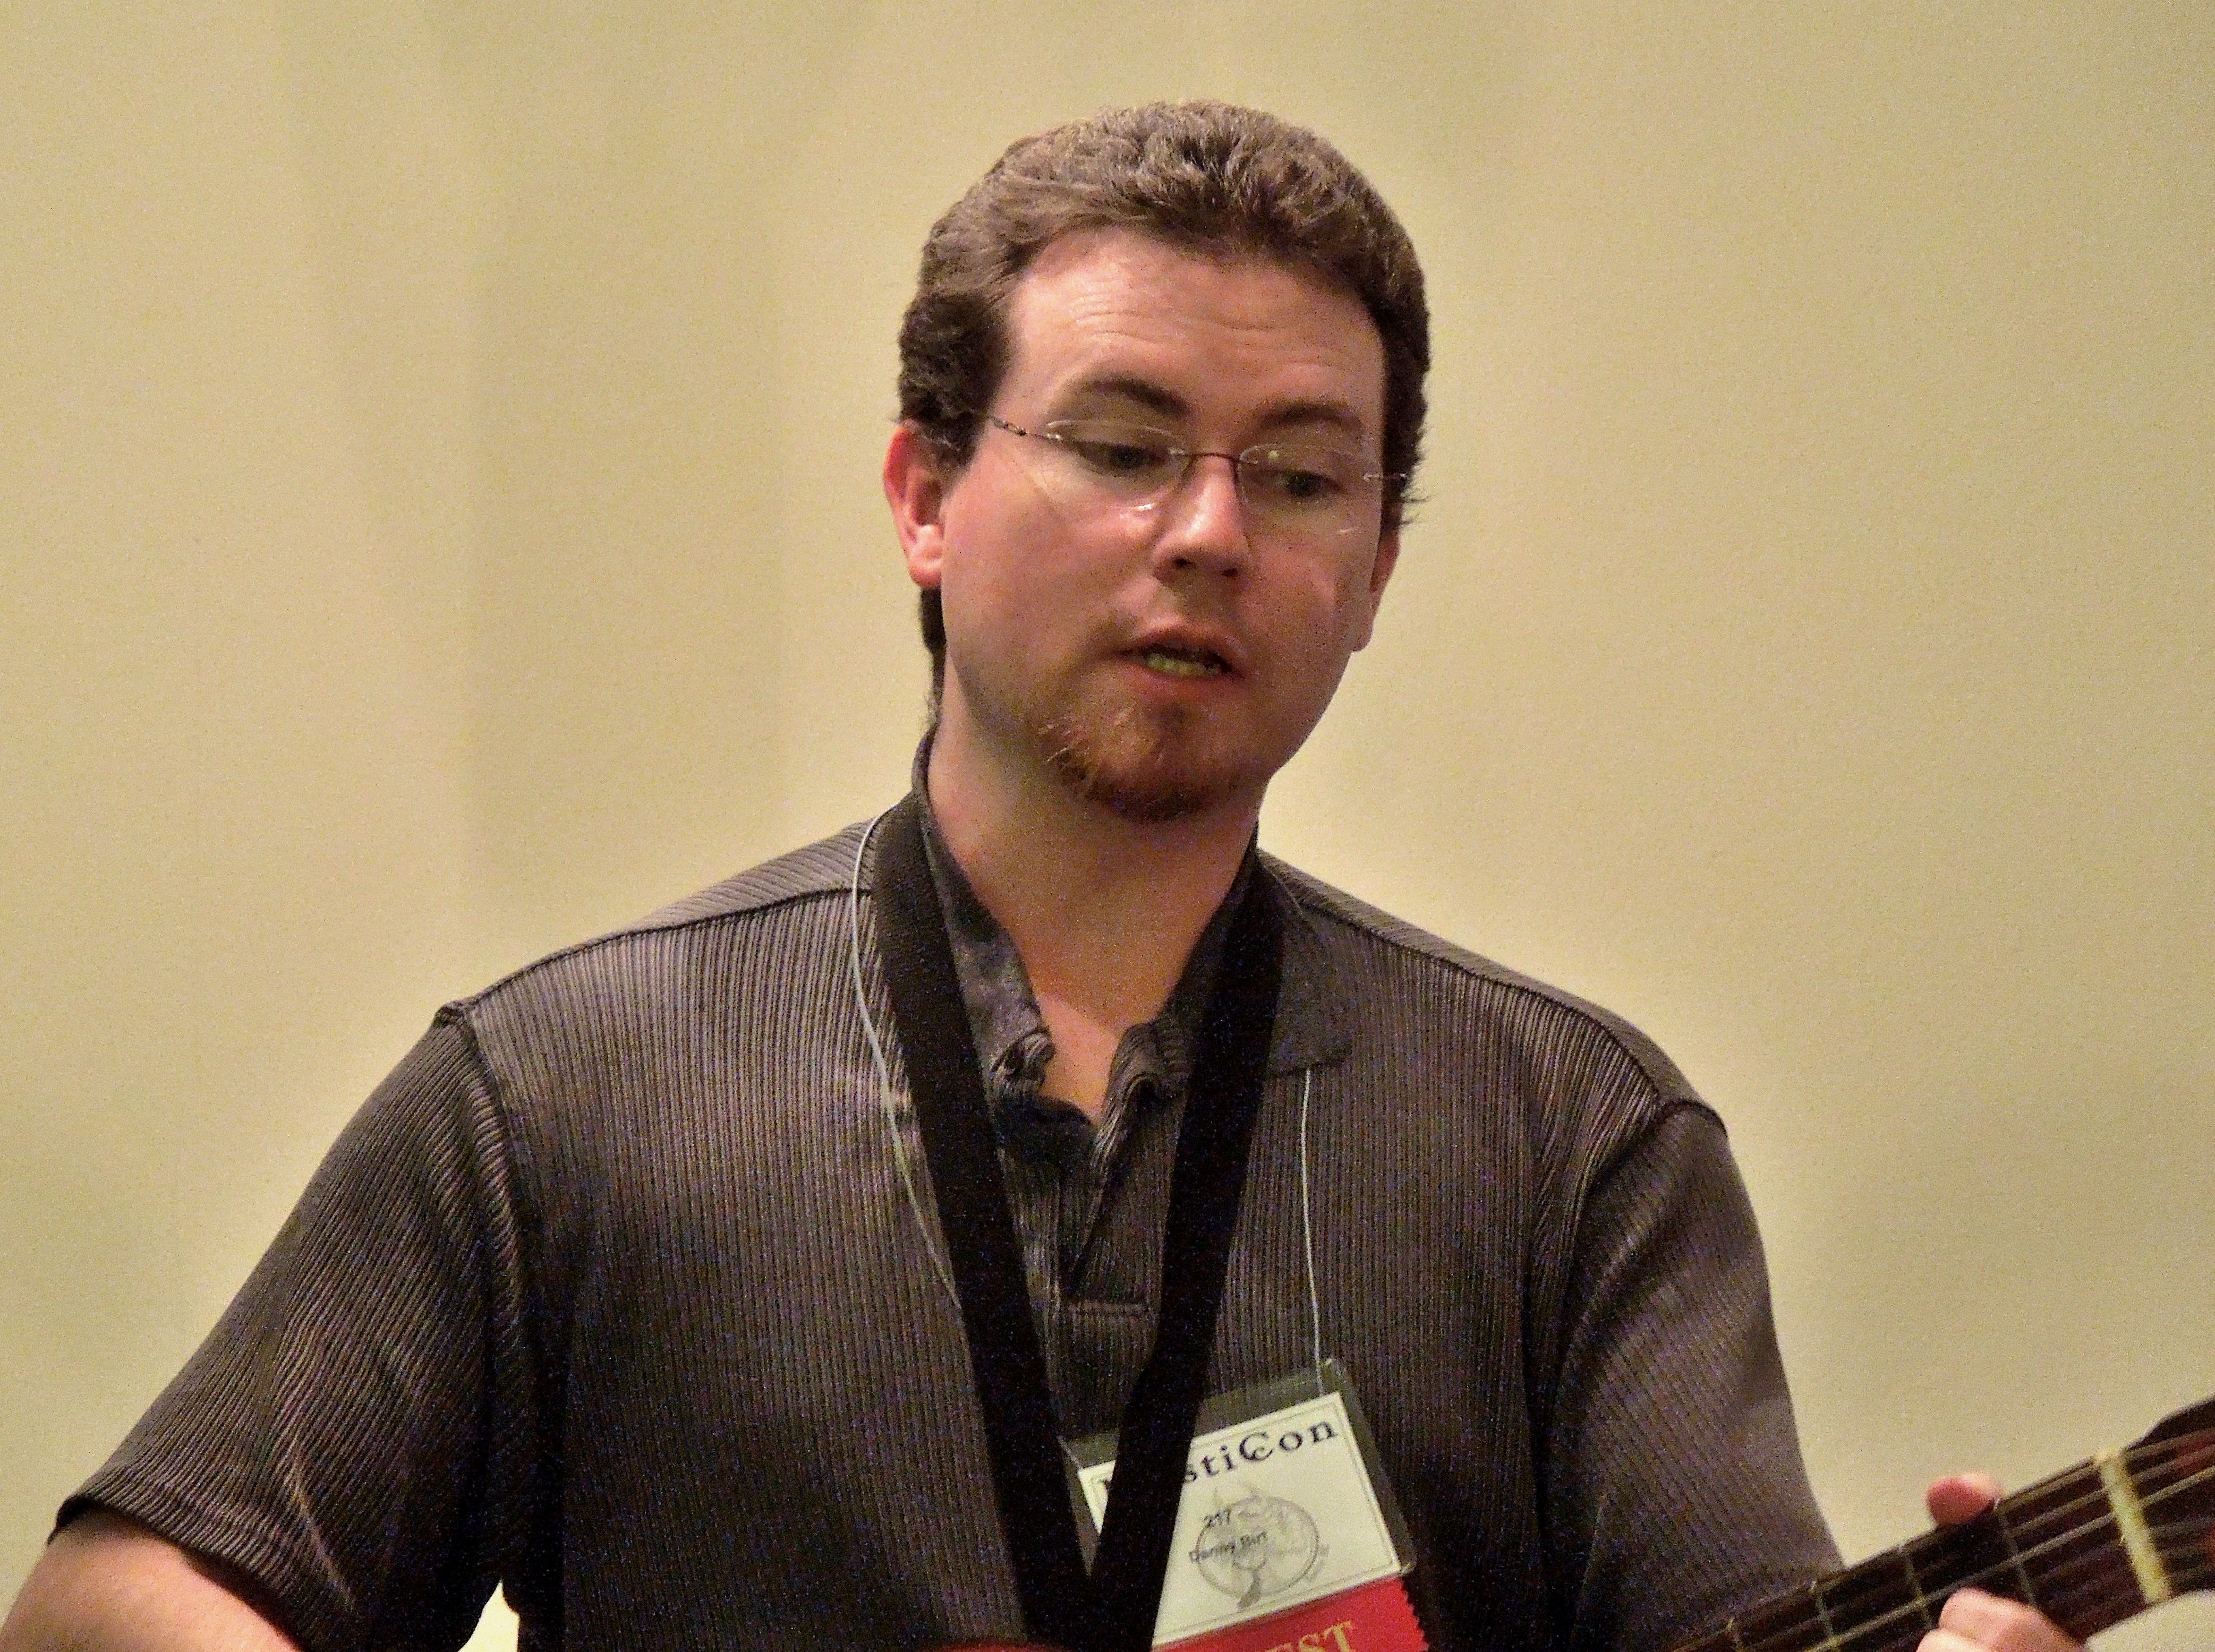 Mysticon 2013 - Sing Along with Danny Birt